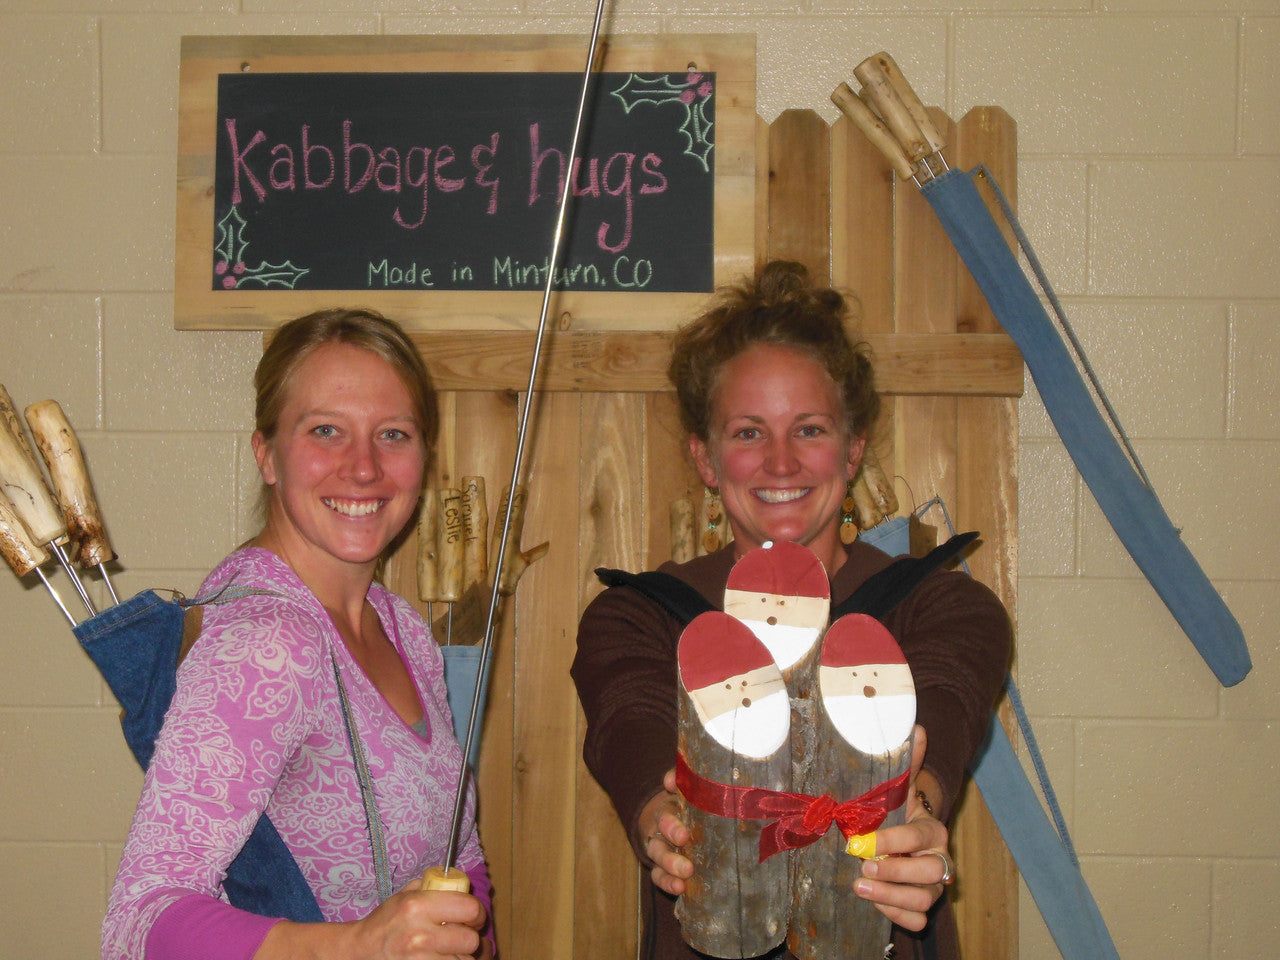 Kabbage & Hugs Minturn, Colorado